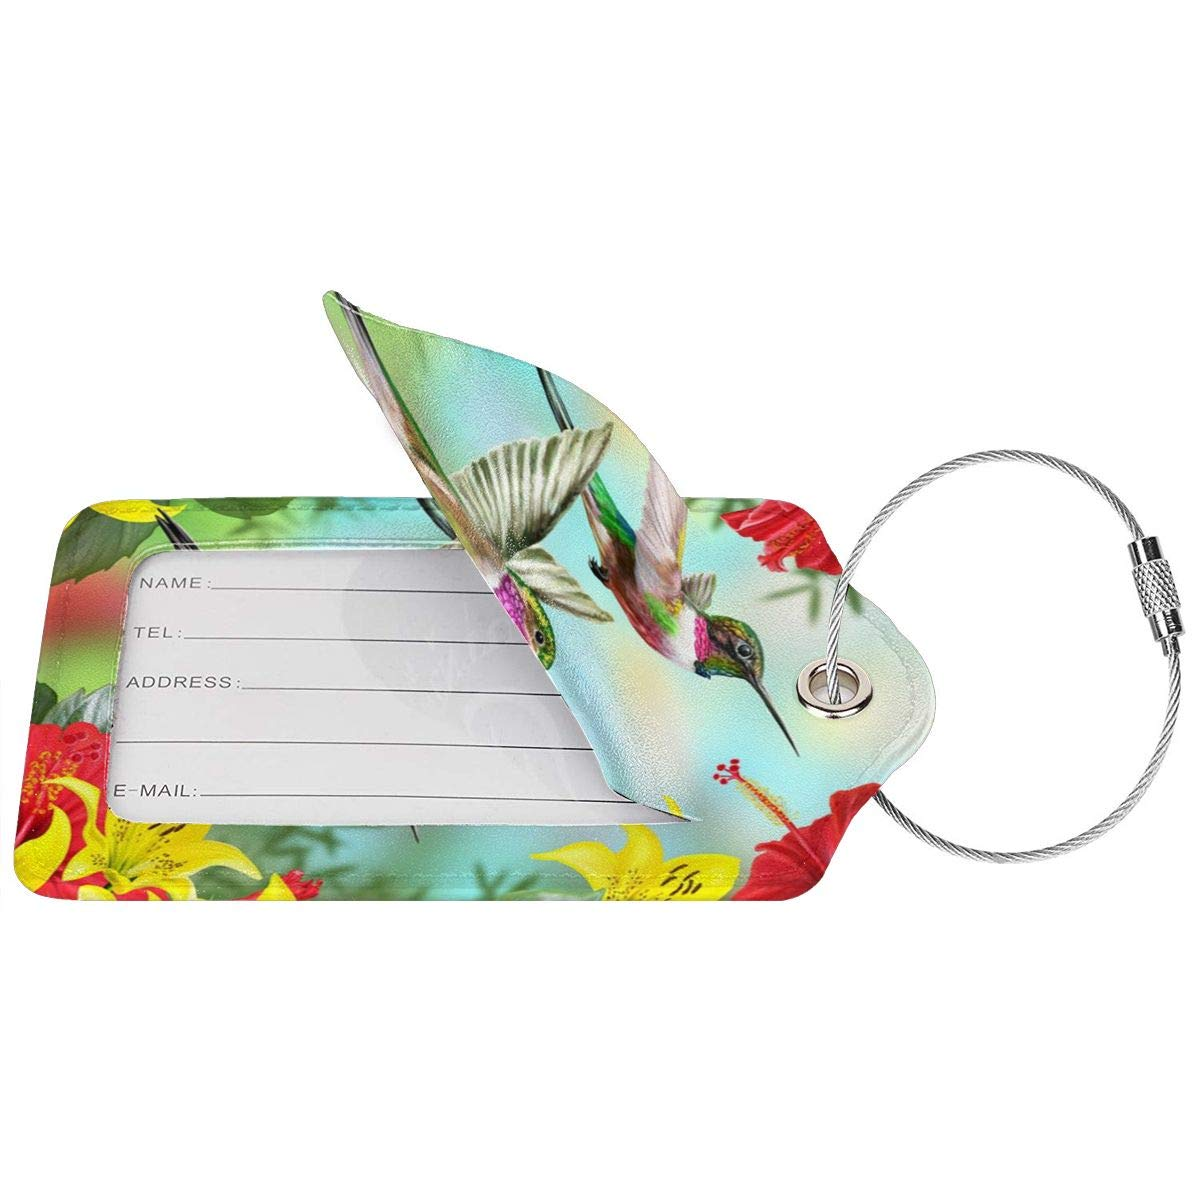 Hummingbirds Red Flower Hibiscus Yellow Lilies Leather Luggage Tags Personalized Travel Accessories With Privacy Flap